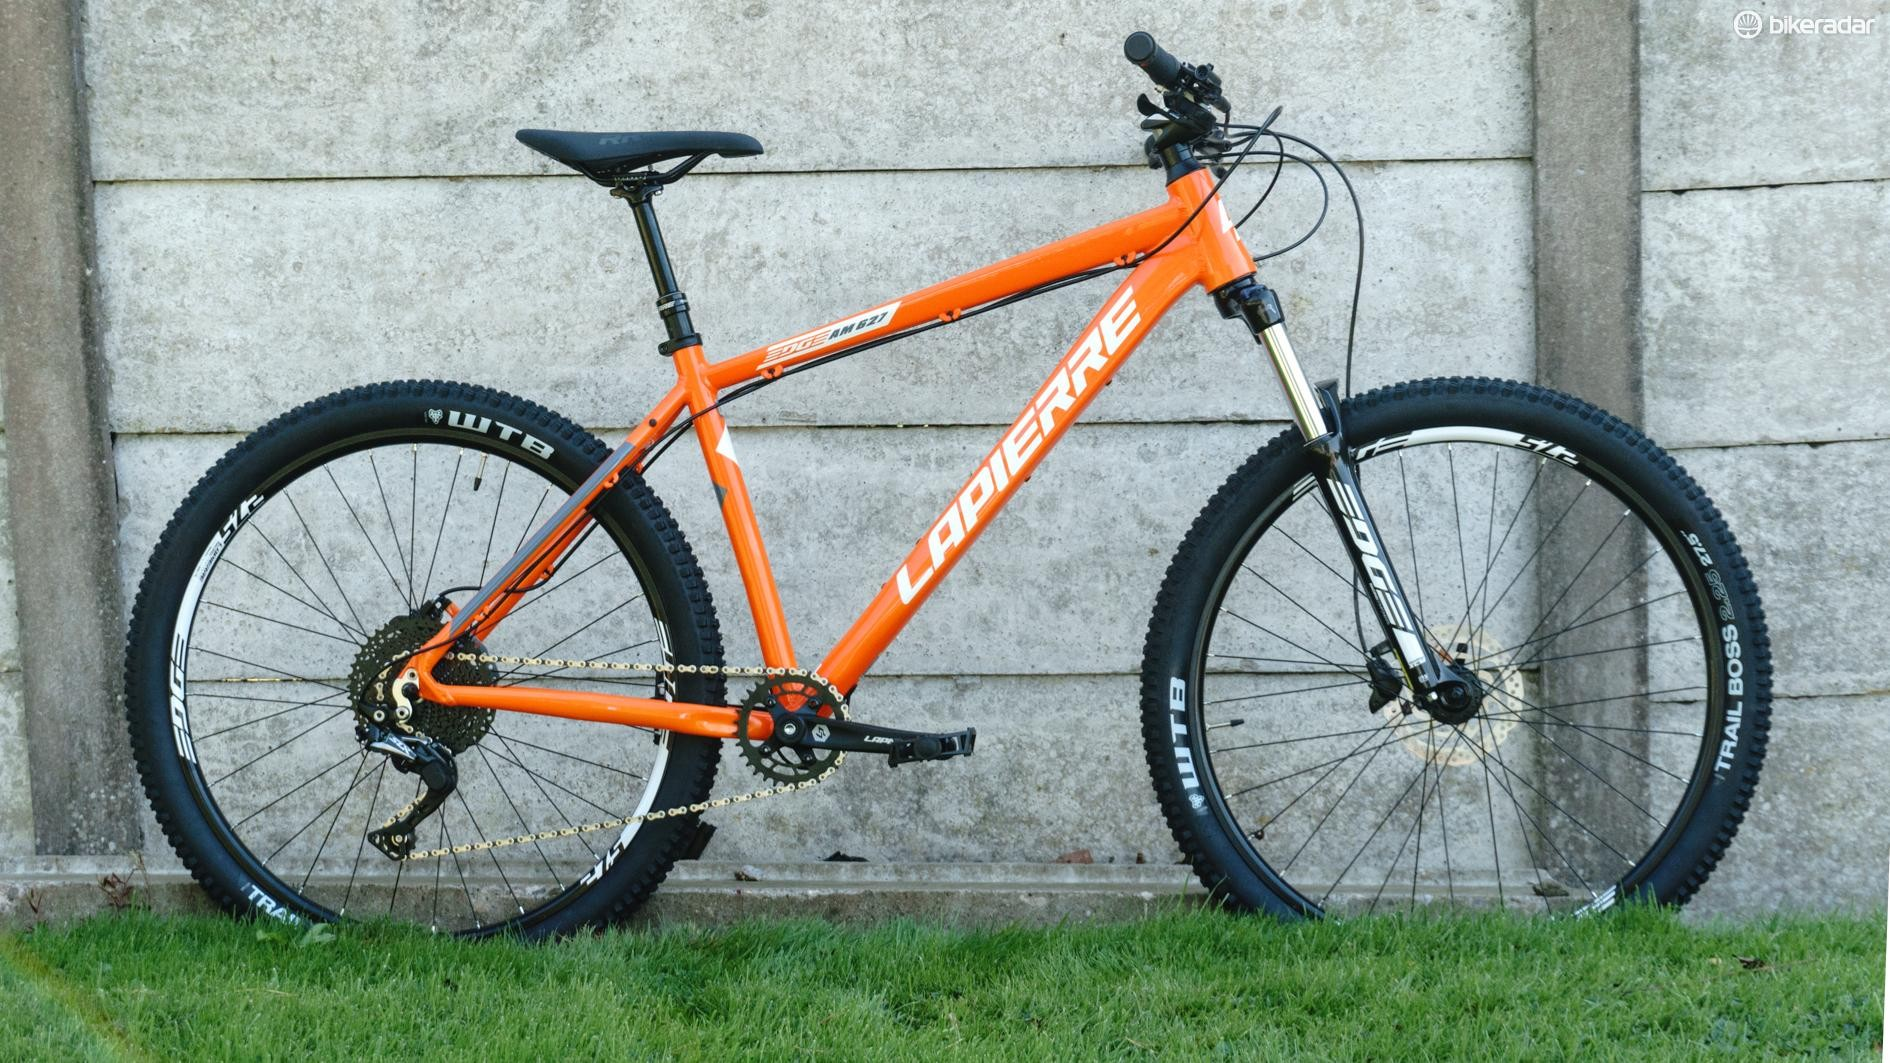 The Lapierre Edge AM 627 may have the likes of Calibre shaking in its direct-sale boots